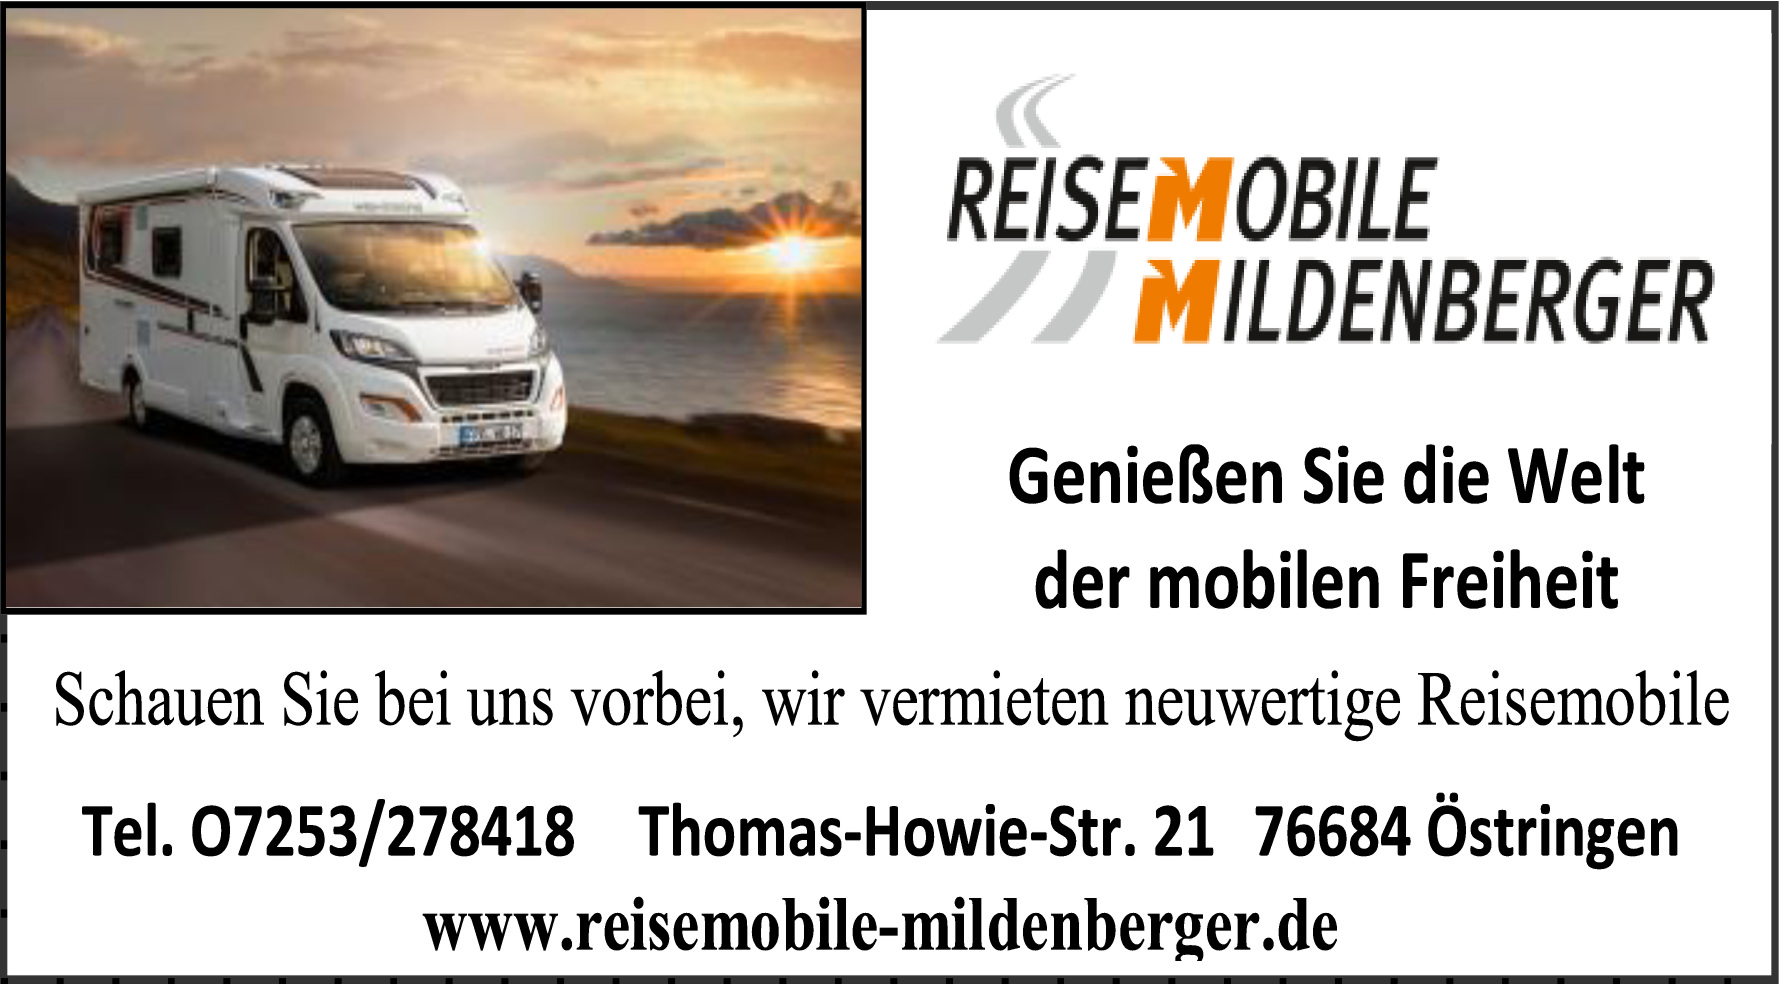 Reisemobile Mildenberger